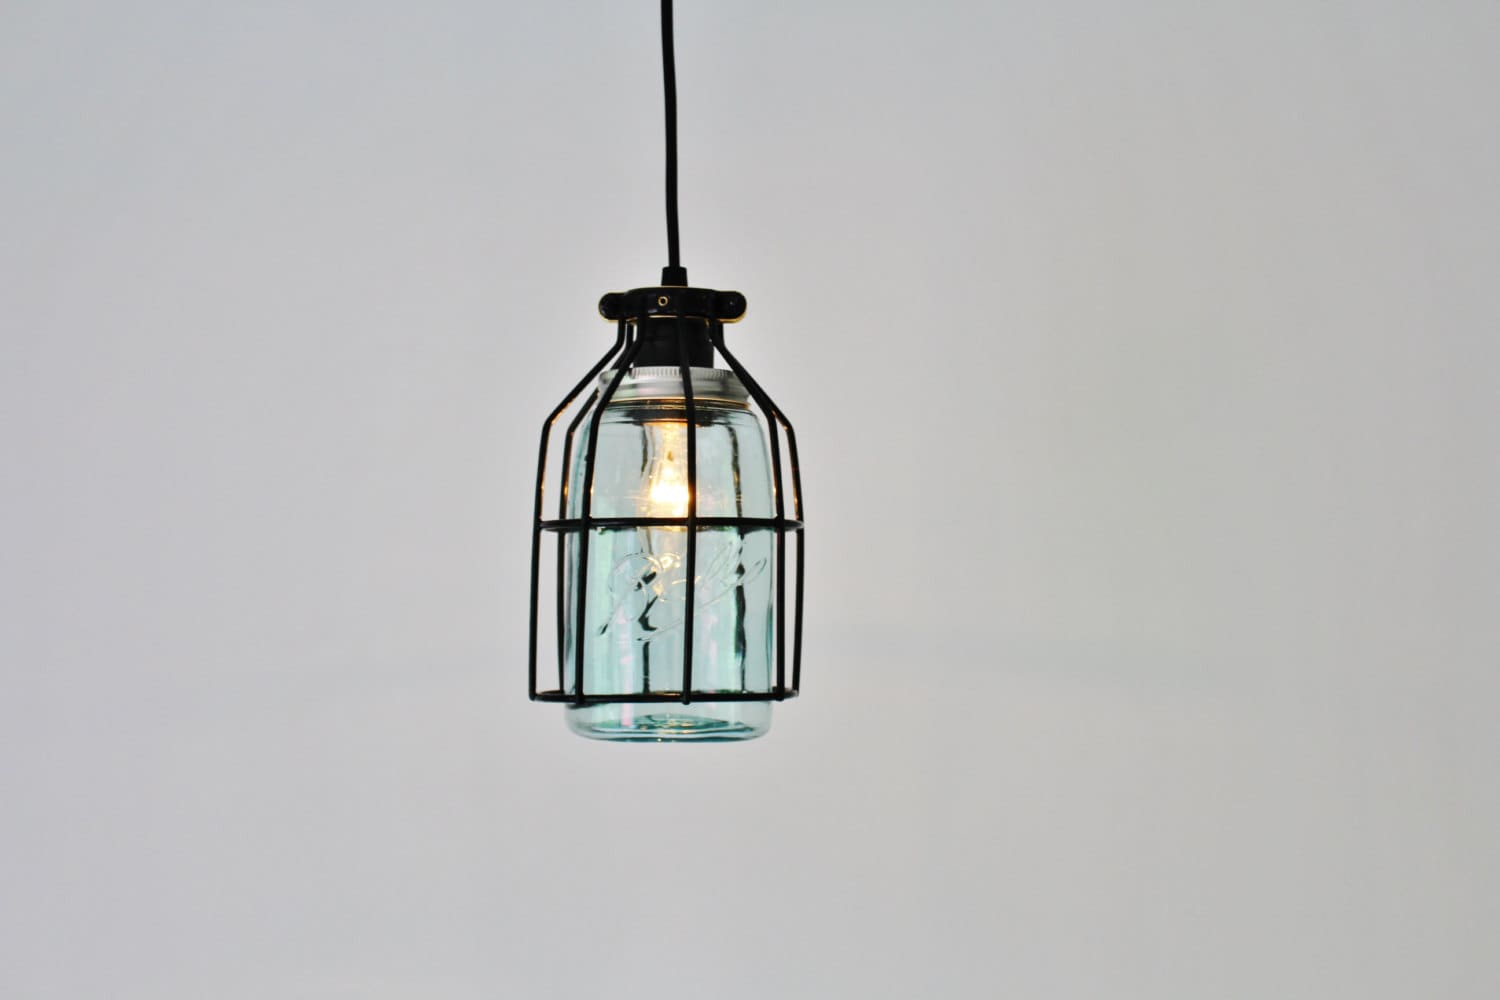 Pendant light black cage hanging pendant lamp antique early zoom arubaitofo Gallery